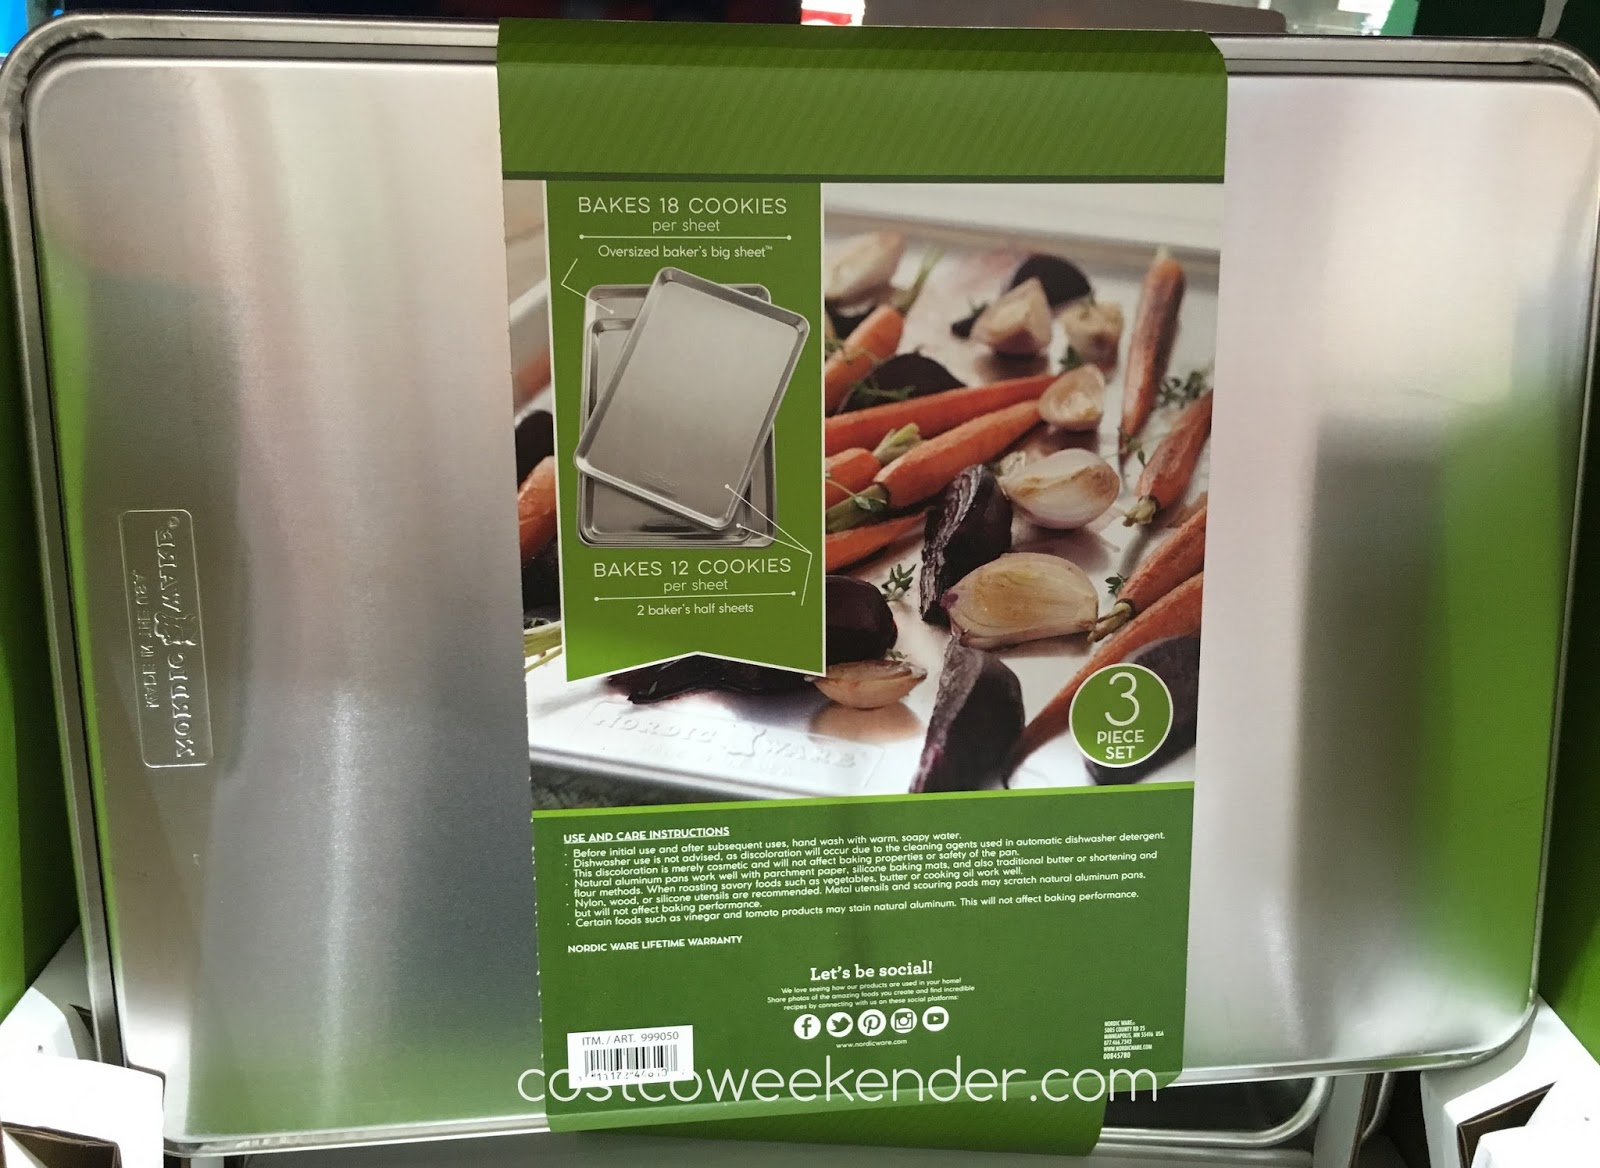 Nordic Ware 3 Piece Aluminum Baking Sheet Set Costco